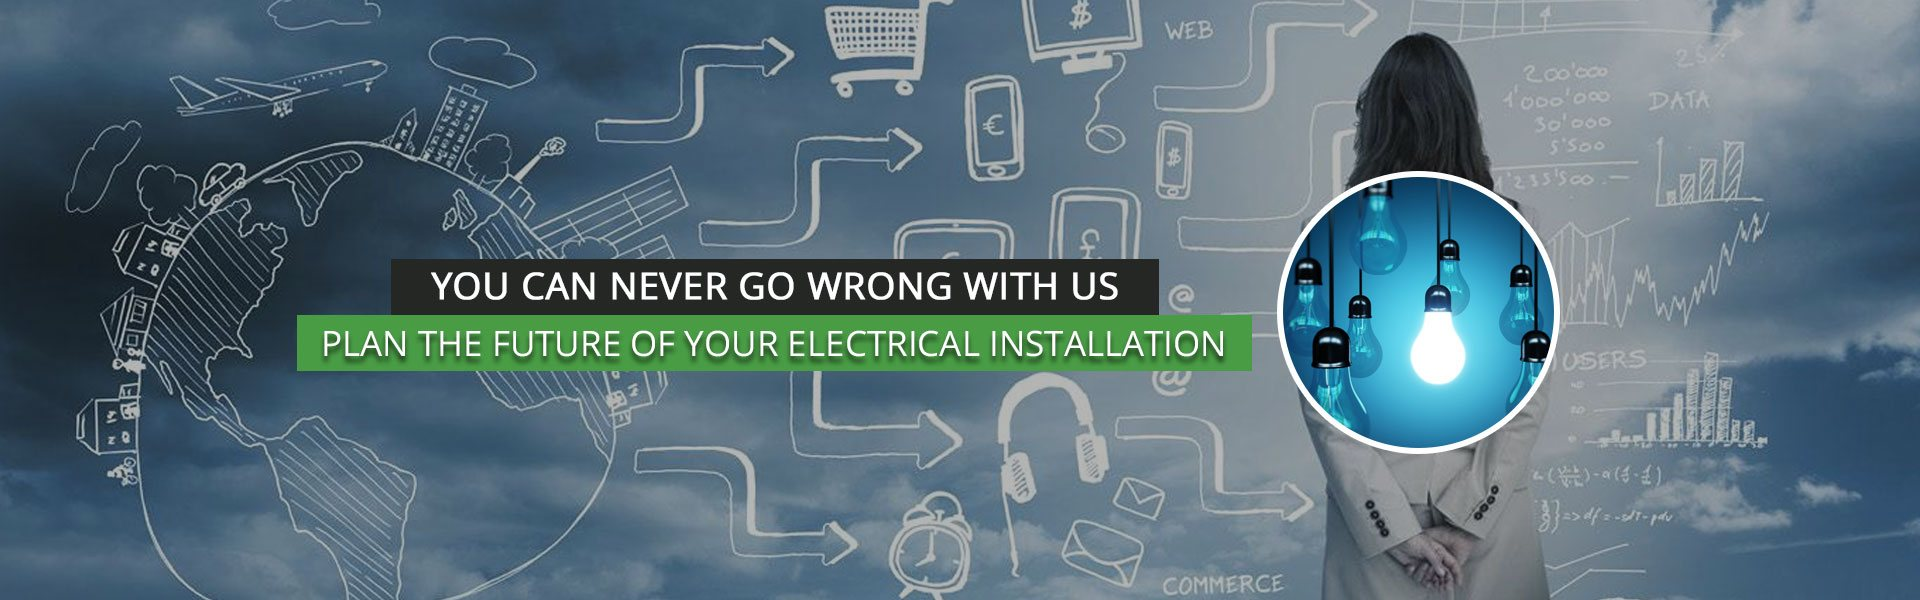 Electrical Contractors & Installations Services - Power Control